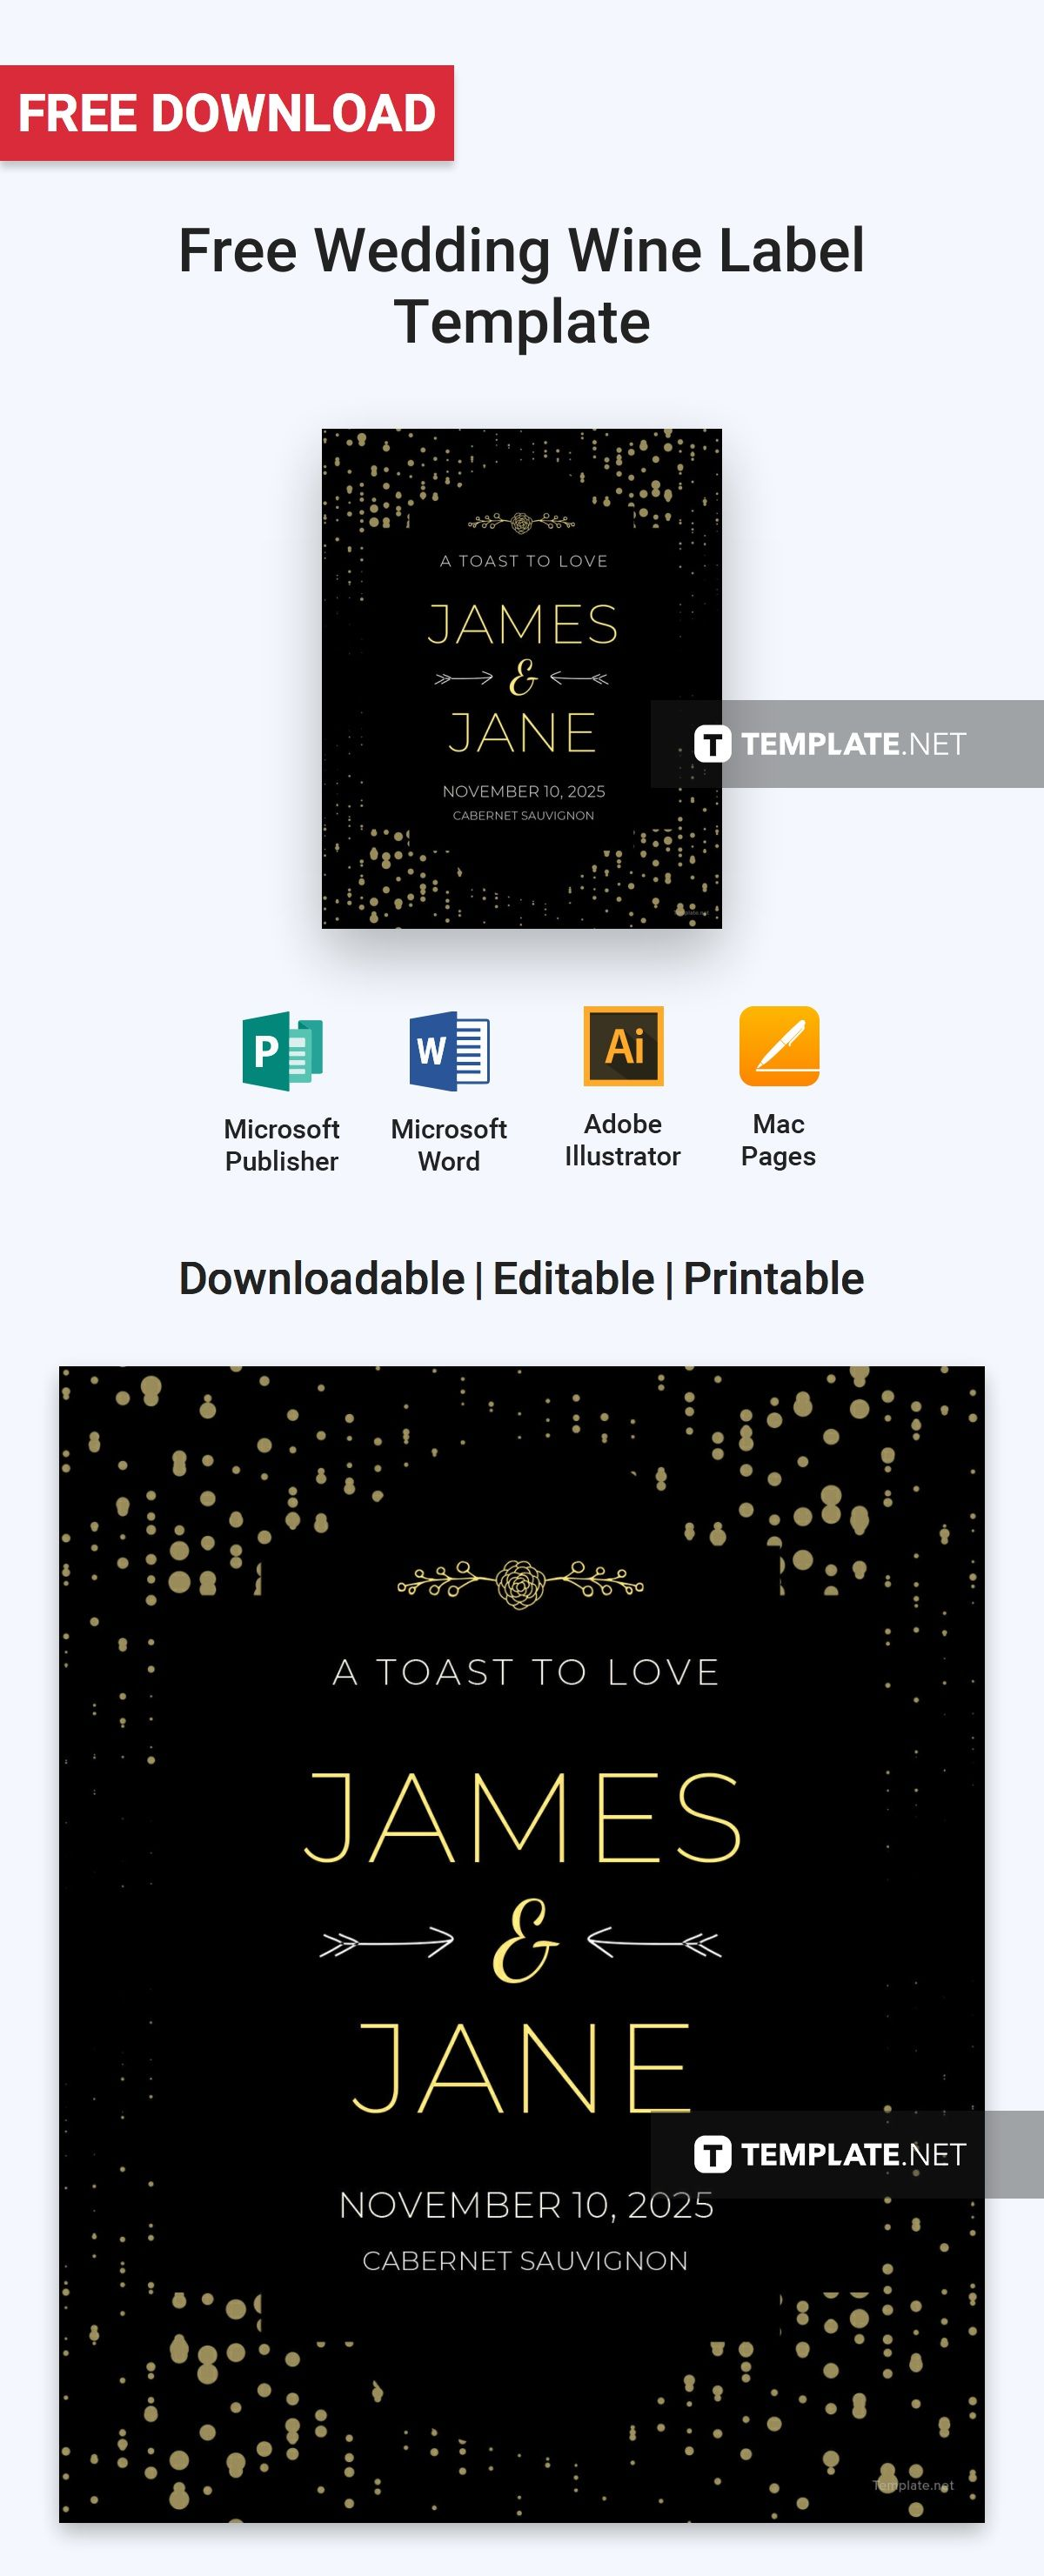 Free Download Label Templates Microsoft Word Free Wedding Wine Label  Free Label Templates  Pinterest  Label .